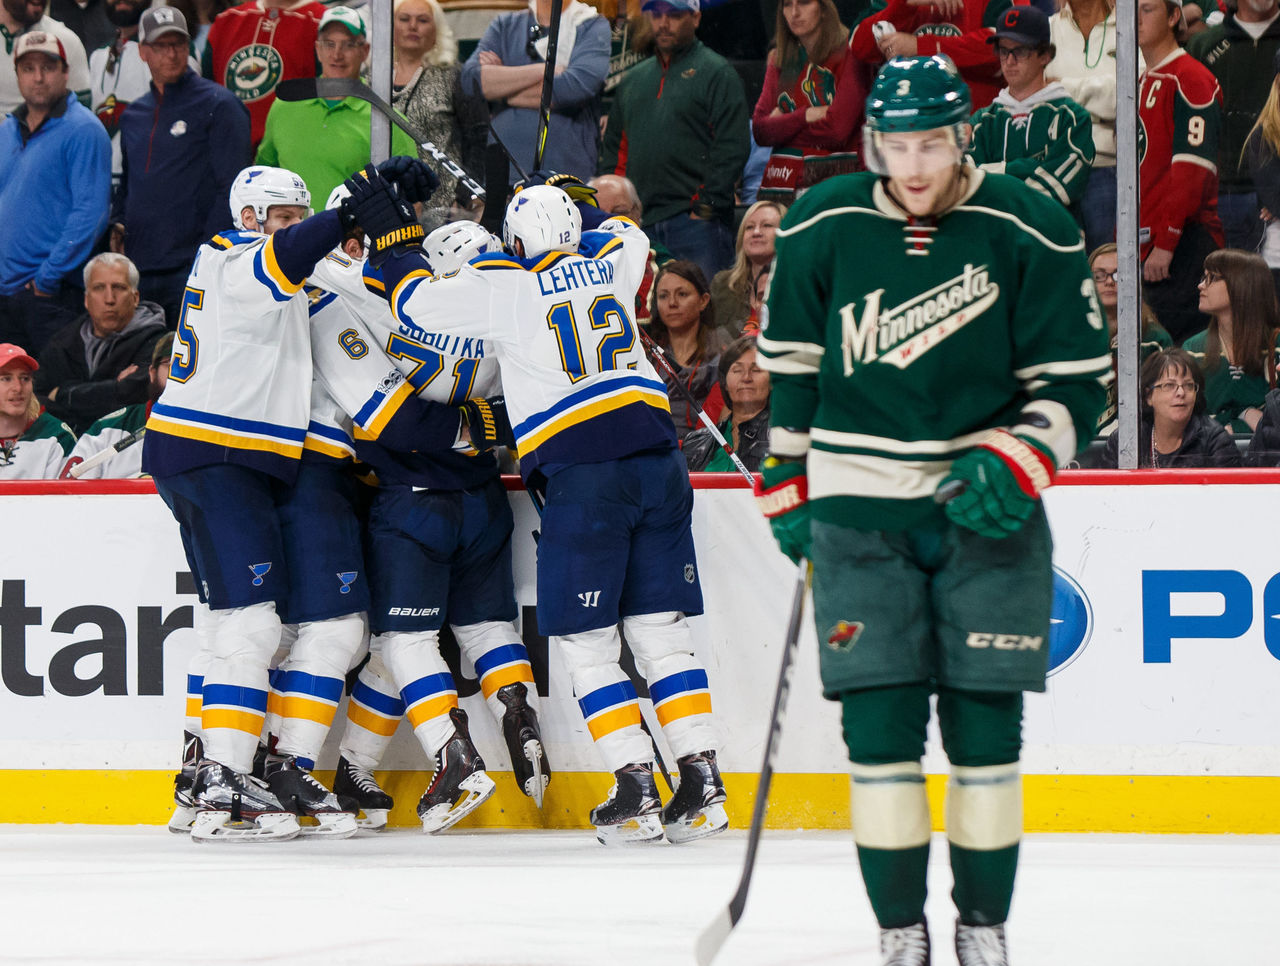 Cropped 2017 04 22t225036z 2008397385 nocid rtrmadp 3 nhl stanley cup playoffs st louis blues at minnesota wild